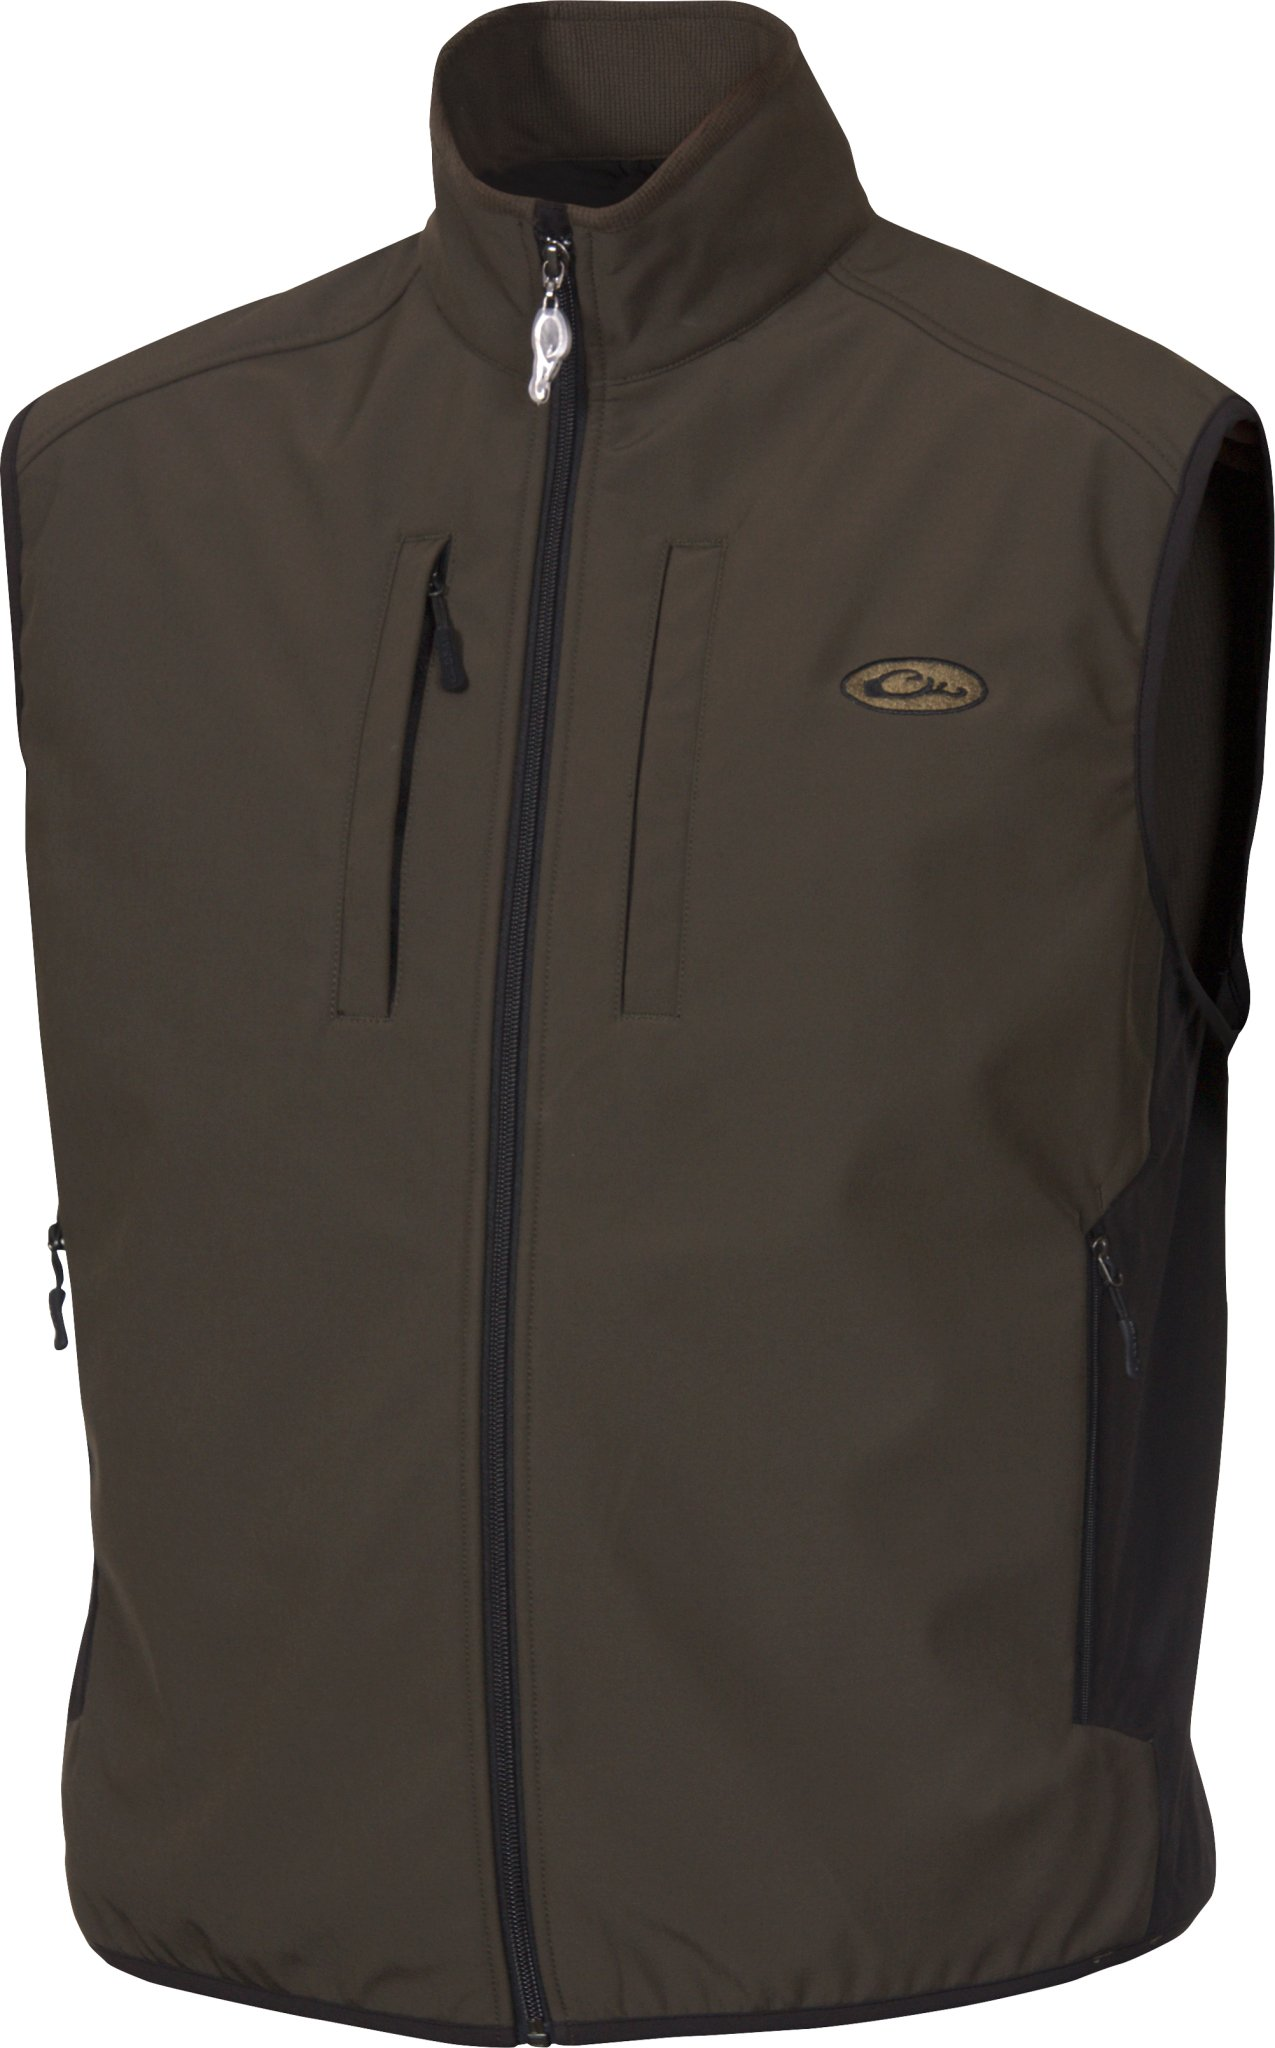 Drake Windproof Tech Olive Vest, Small